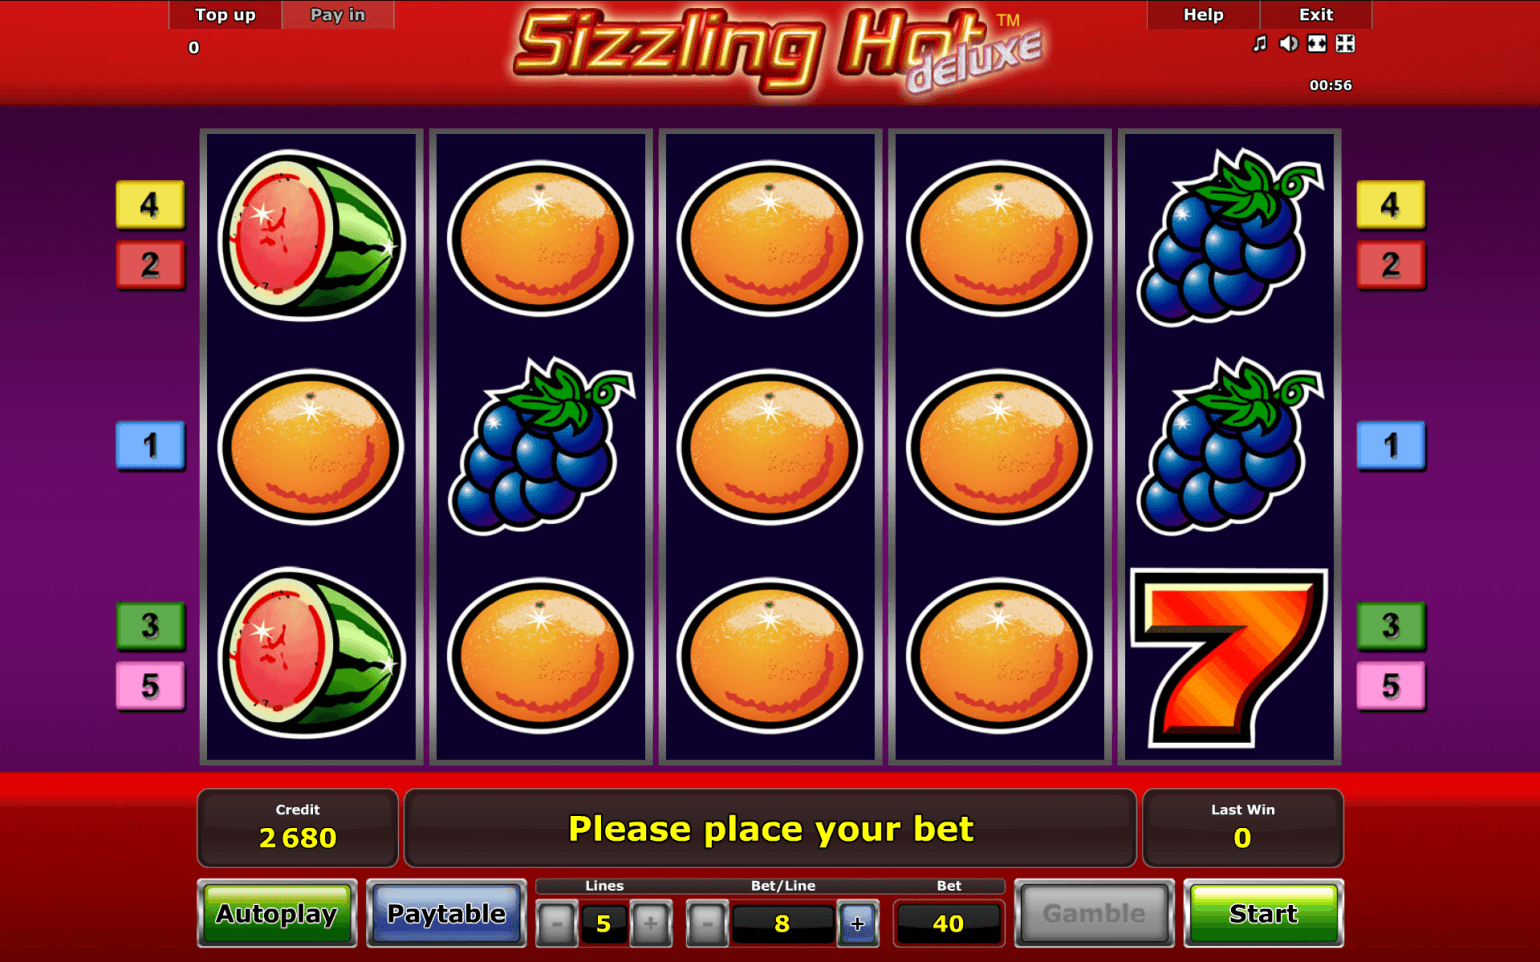 sizzling hot mobile games